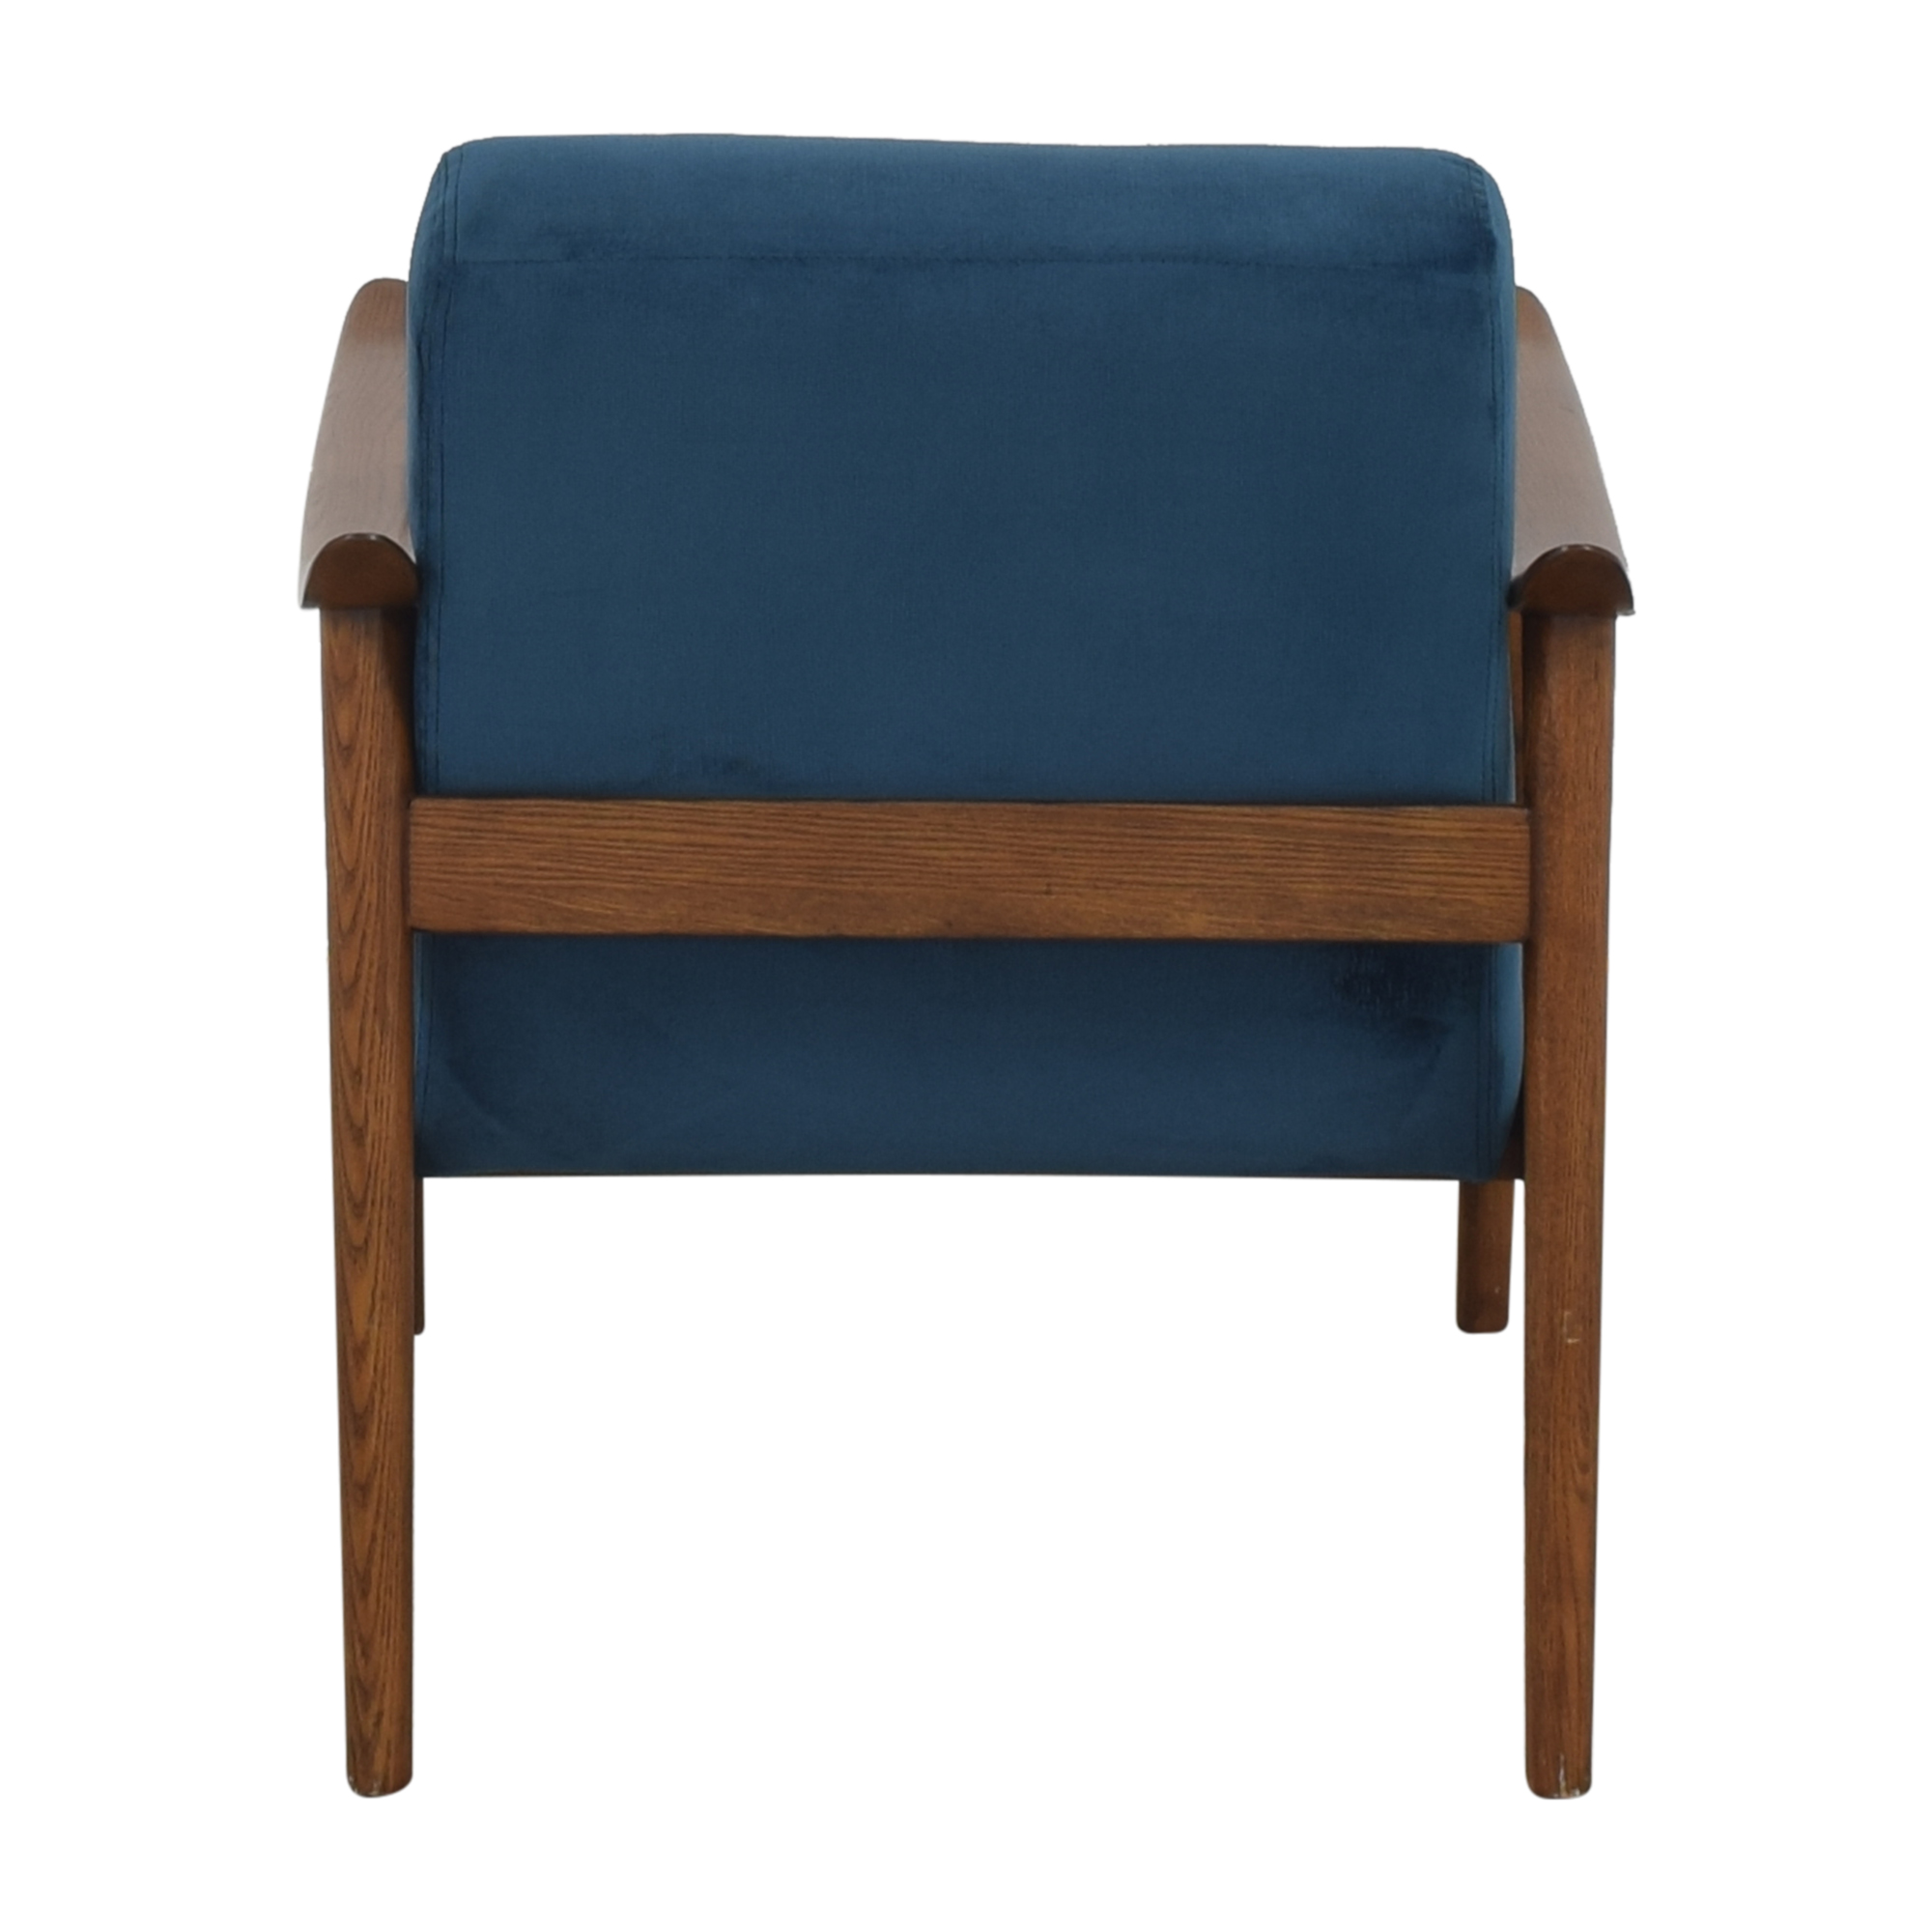 West Elm West Elm Mid-Century Show Wood Upholstered Chair second hand